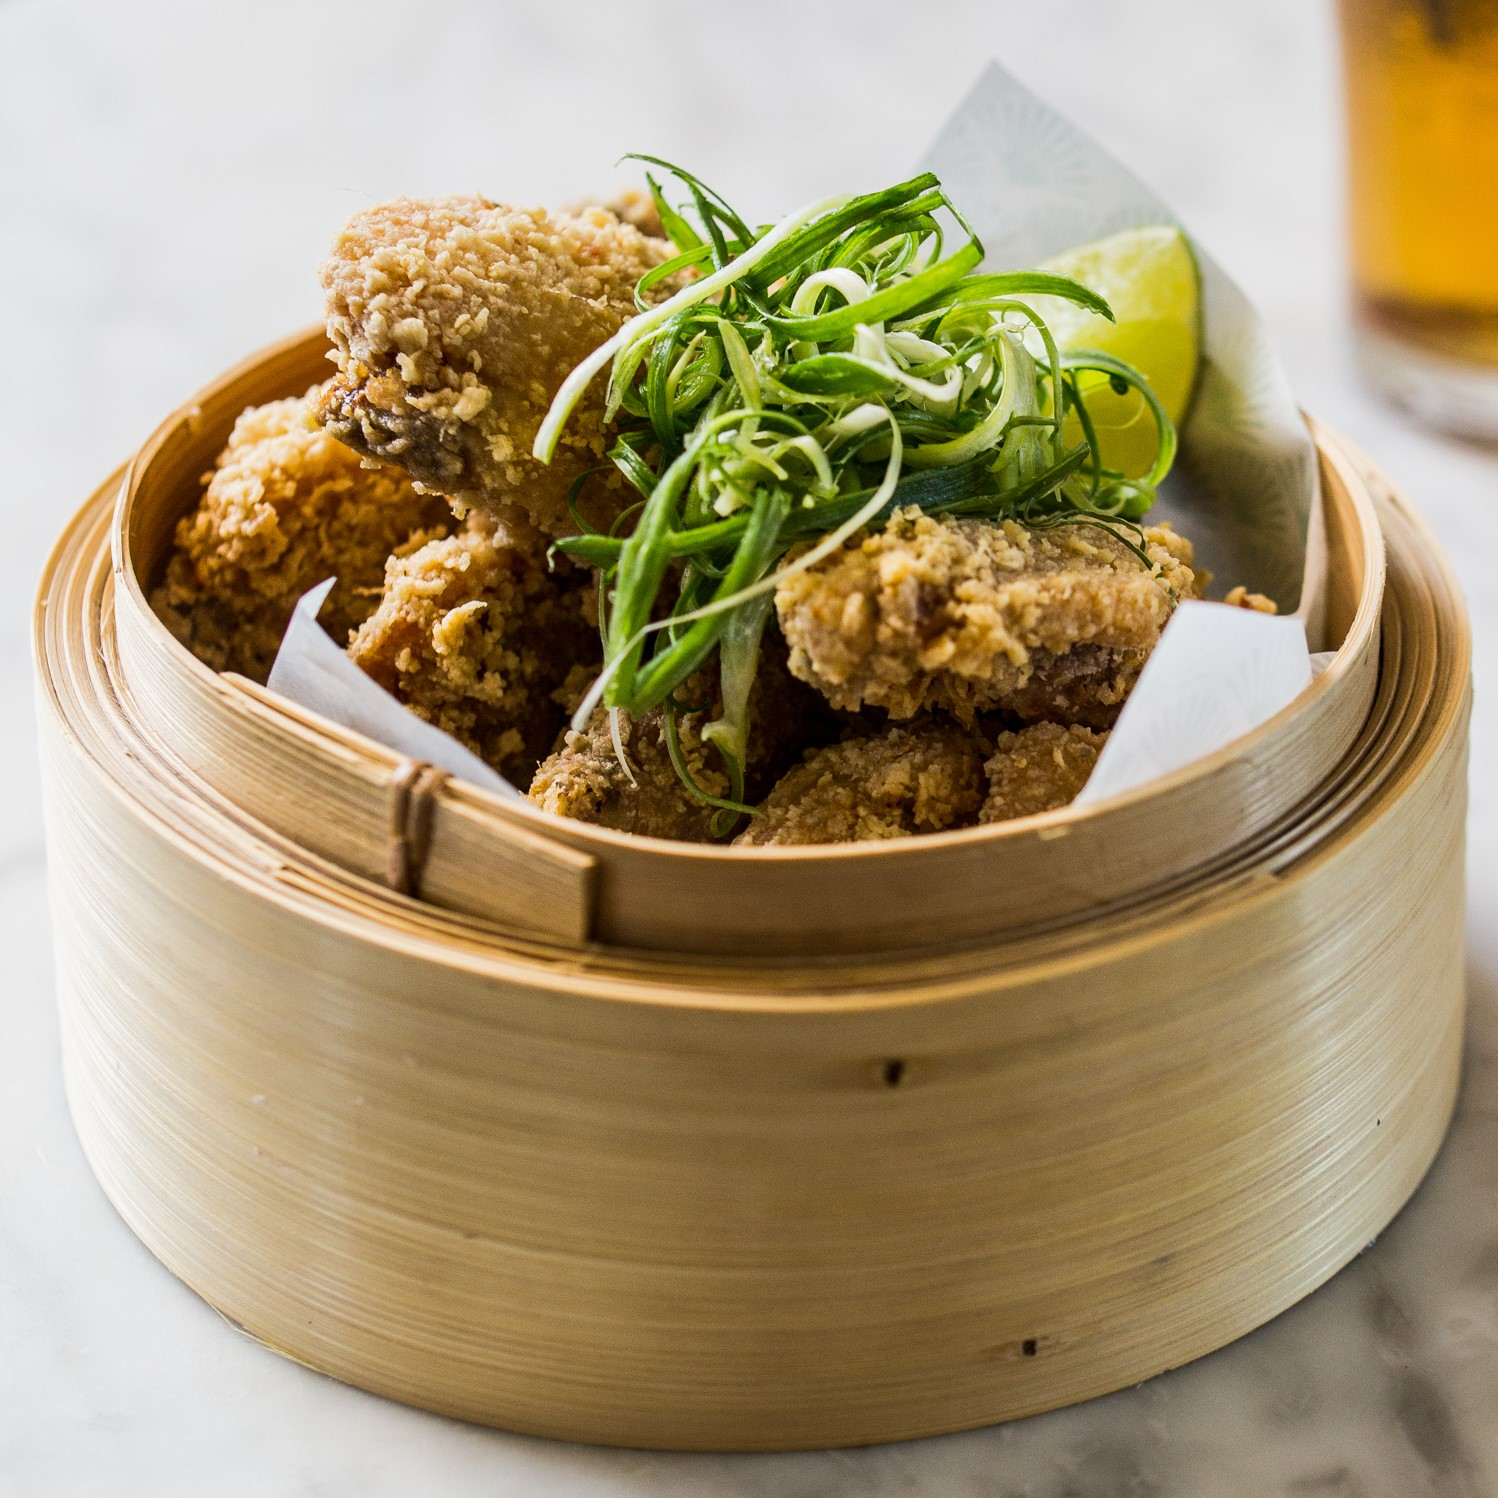 Deep-Fried Chicken Wings | Asian-style marinade, lemongrass, kaffir lime leaves, garlic, chilli flakes | 16